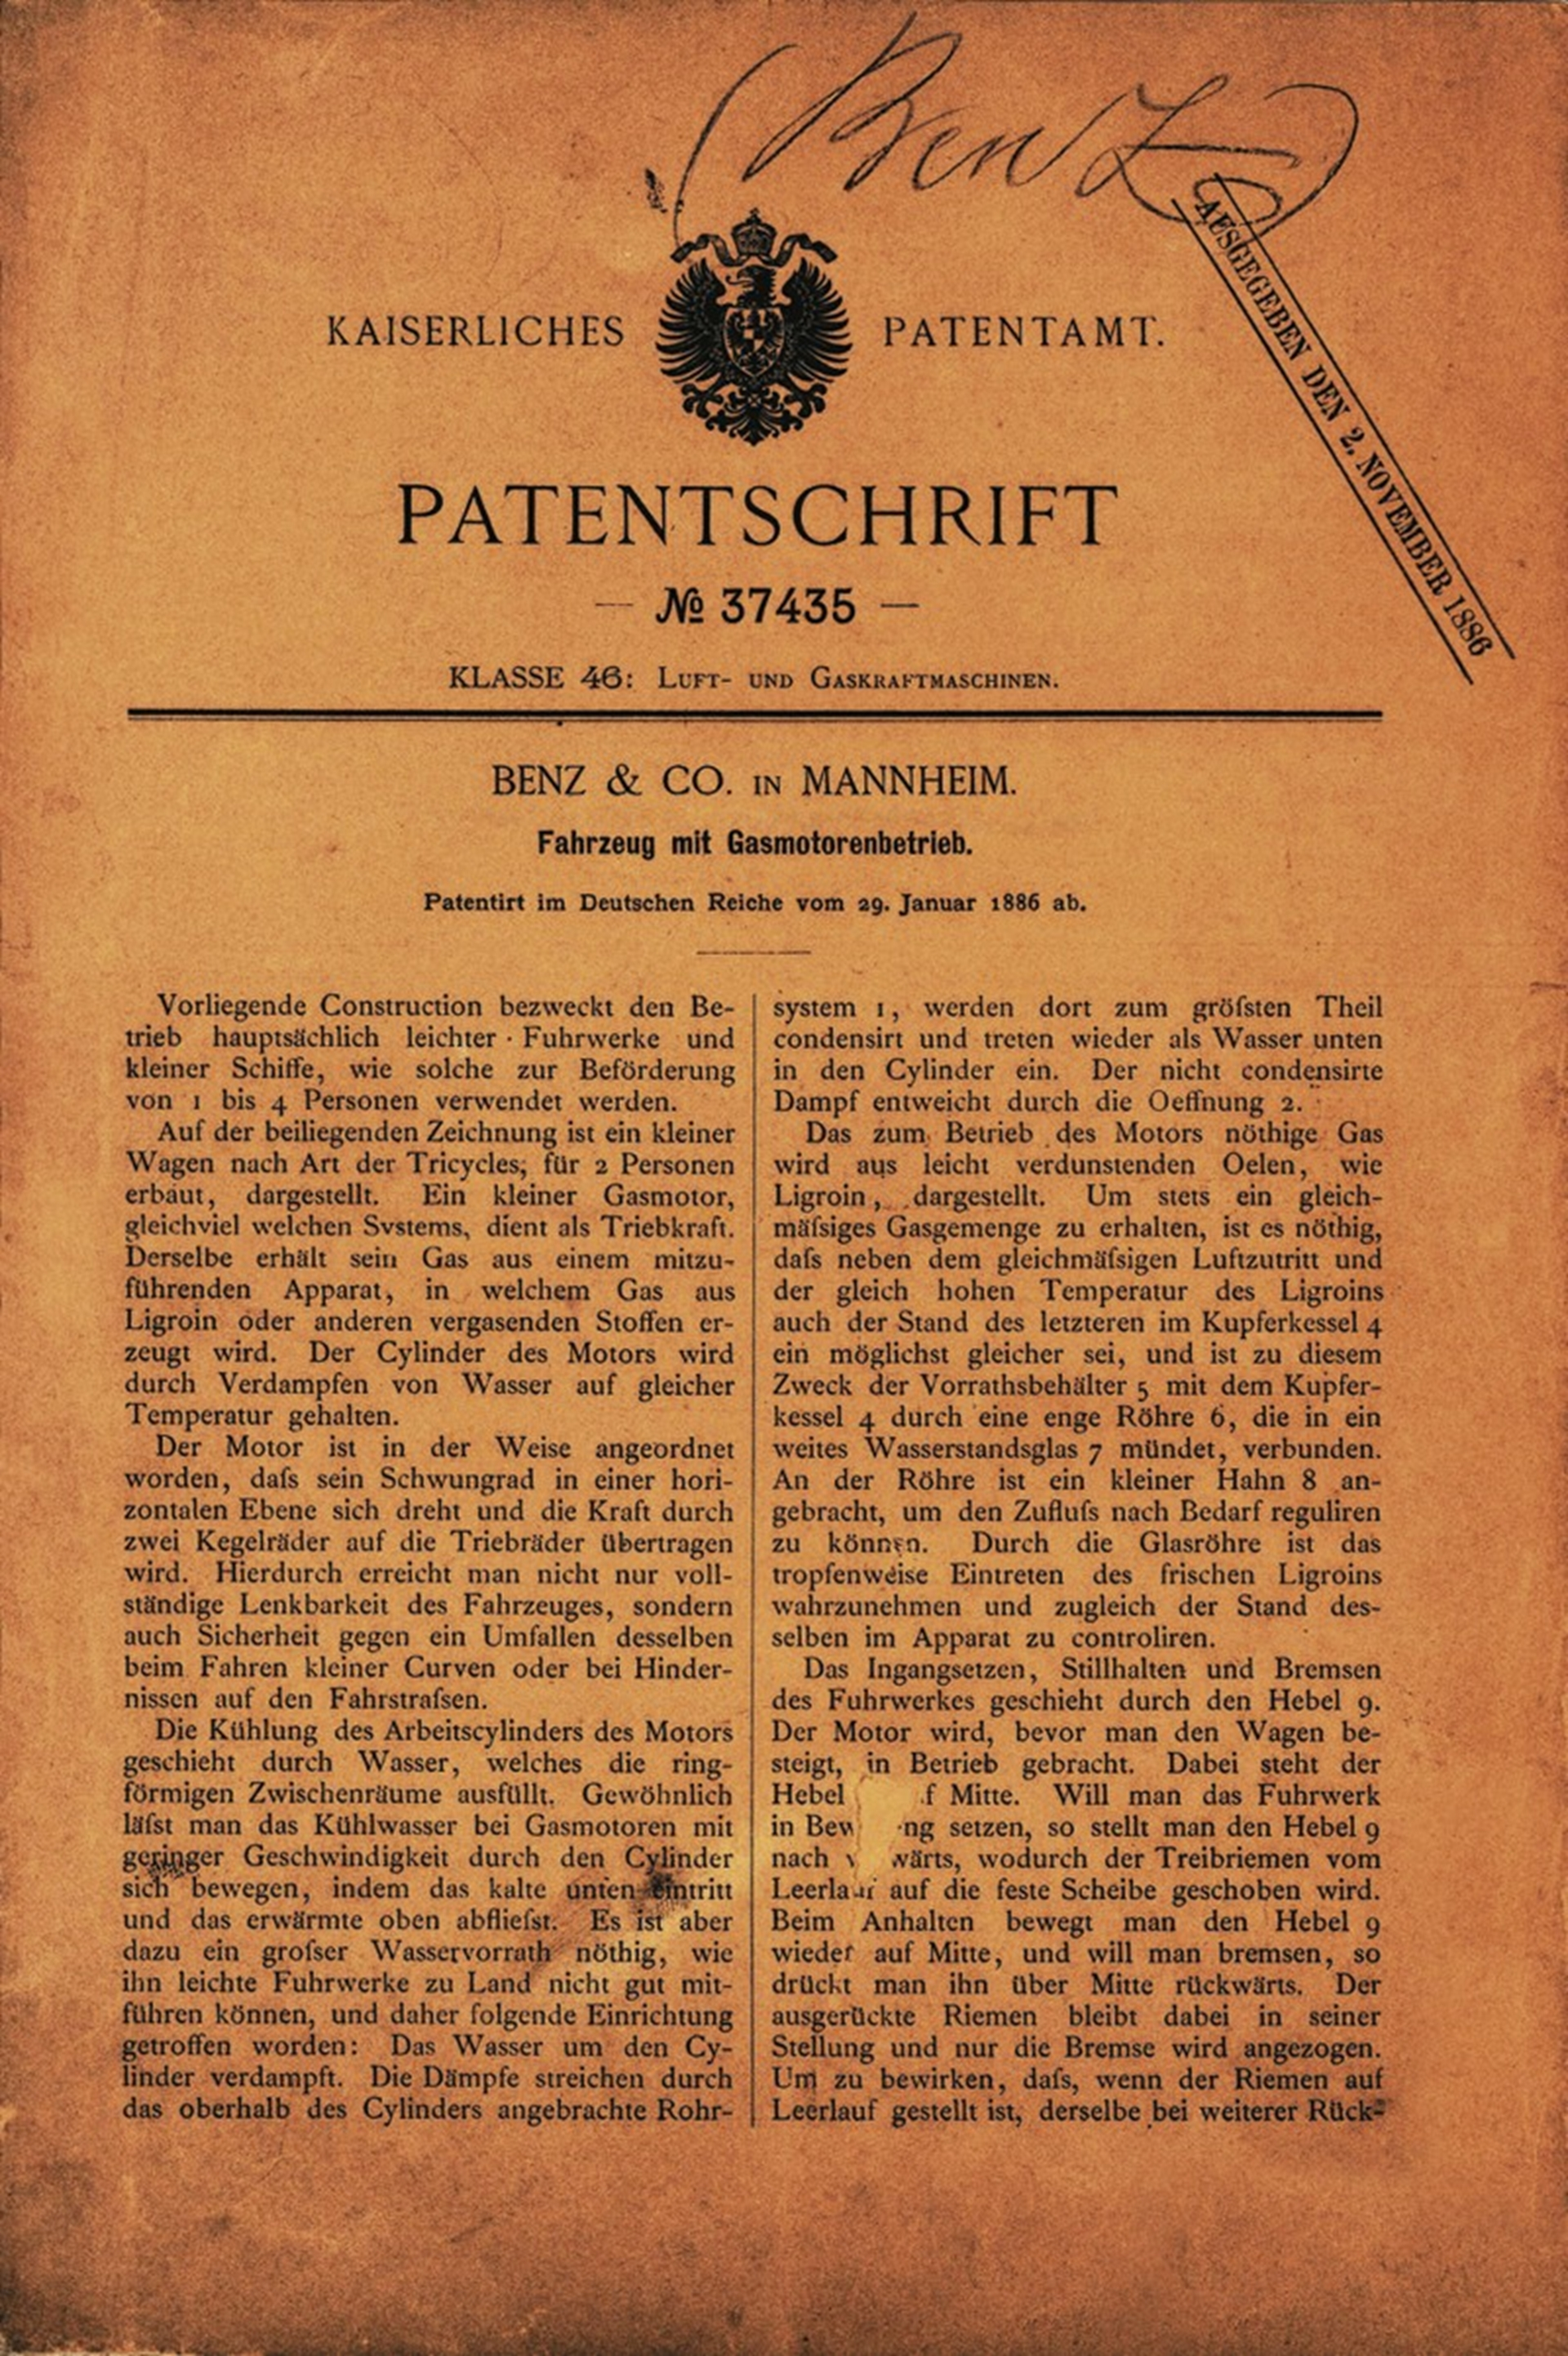 Mercedes-Benz German Patent